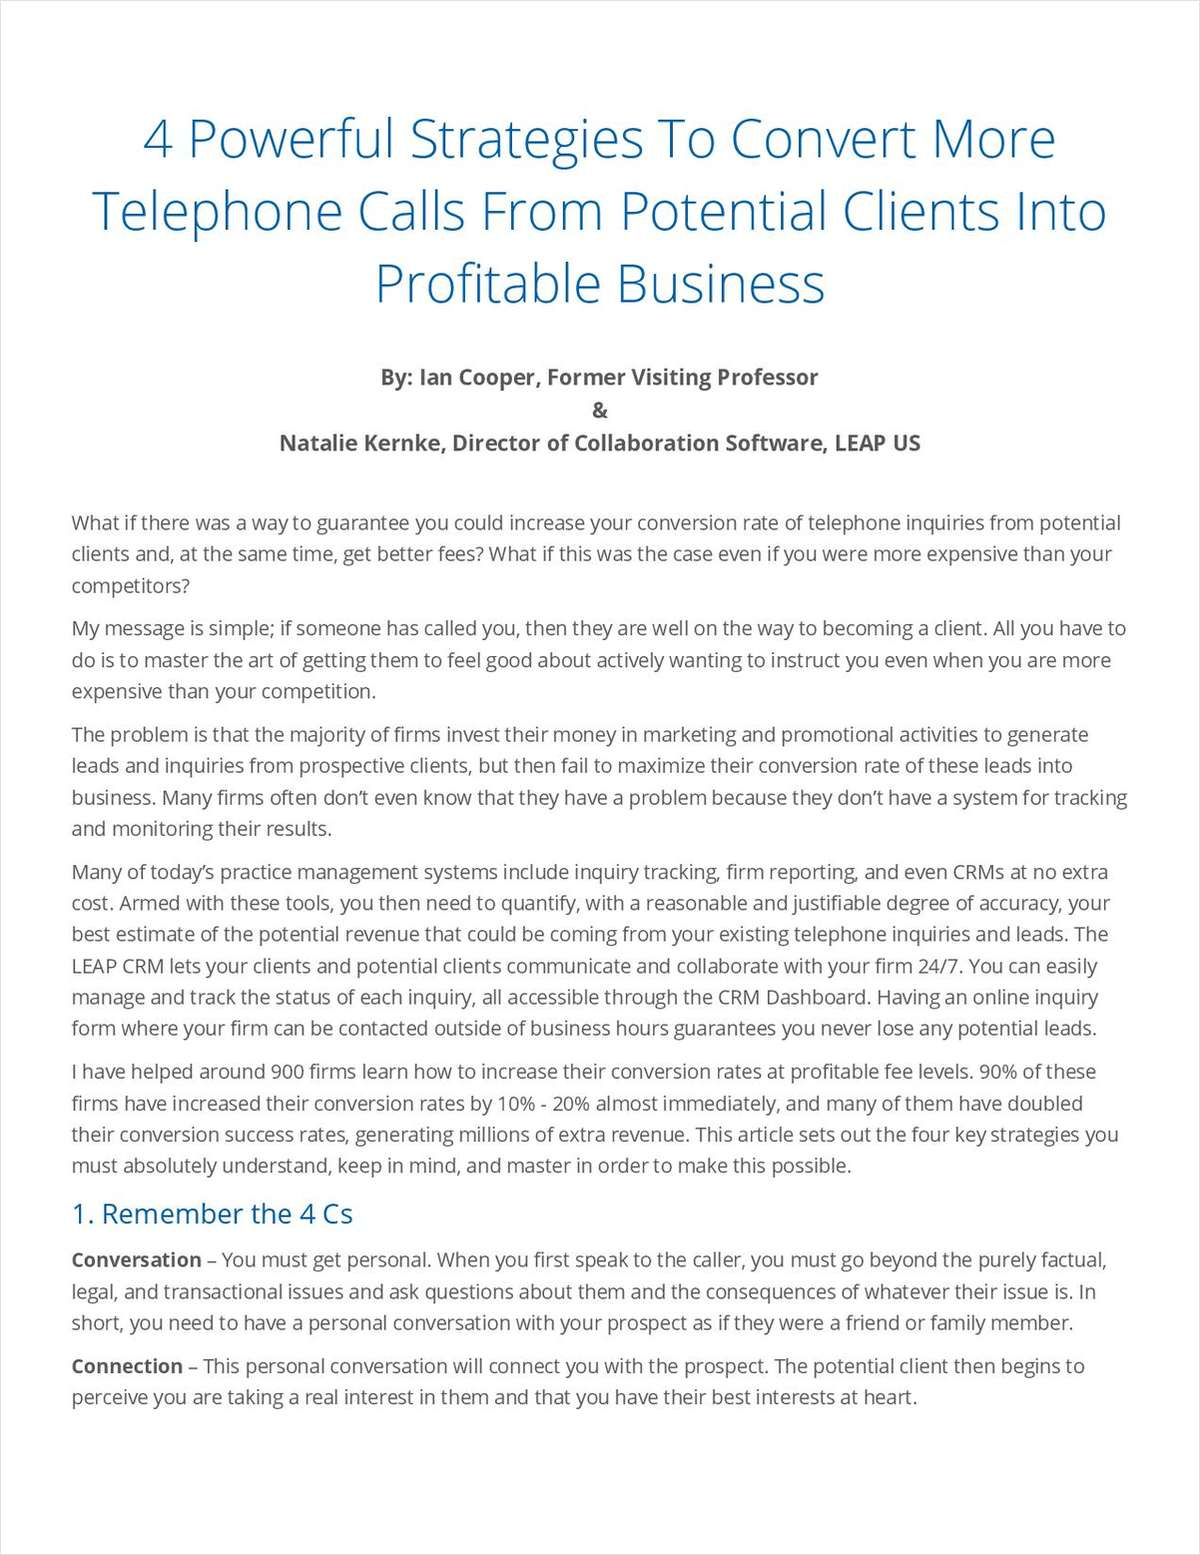 4 Powerful Strategies To Convert More Telephone Calls From Potential Clients Into Profitable Business